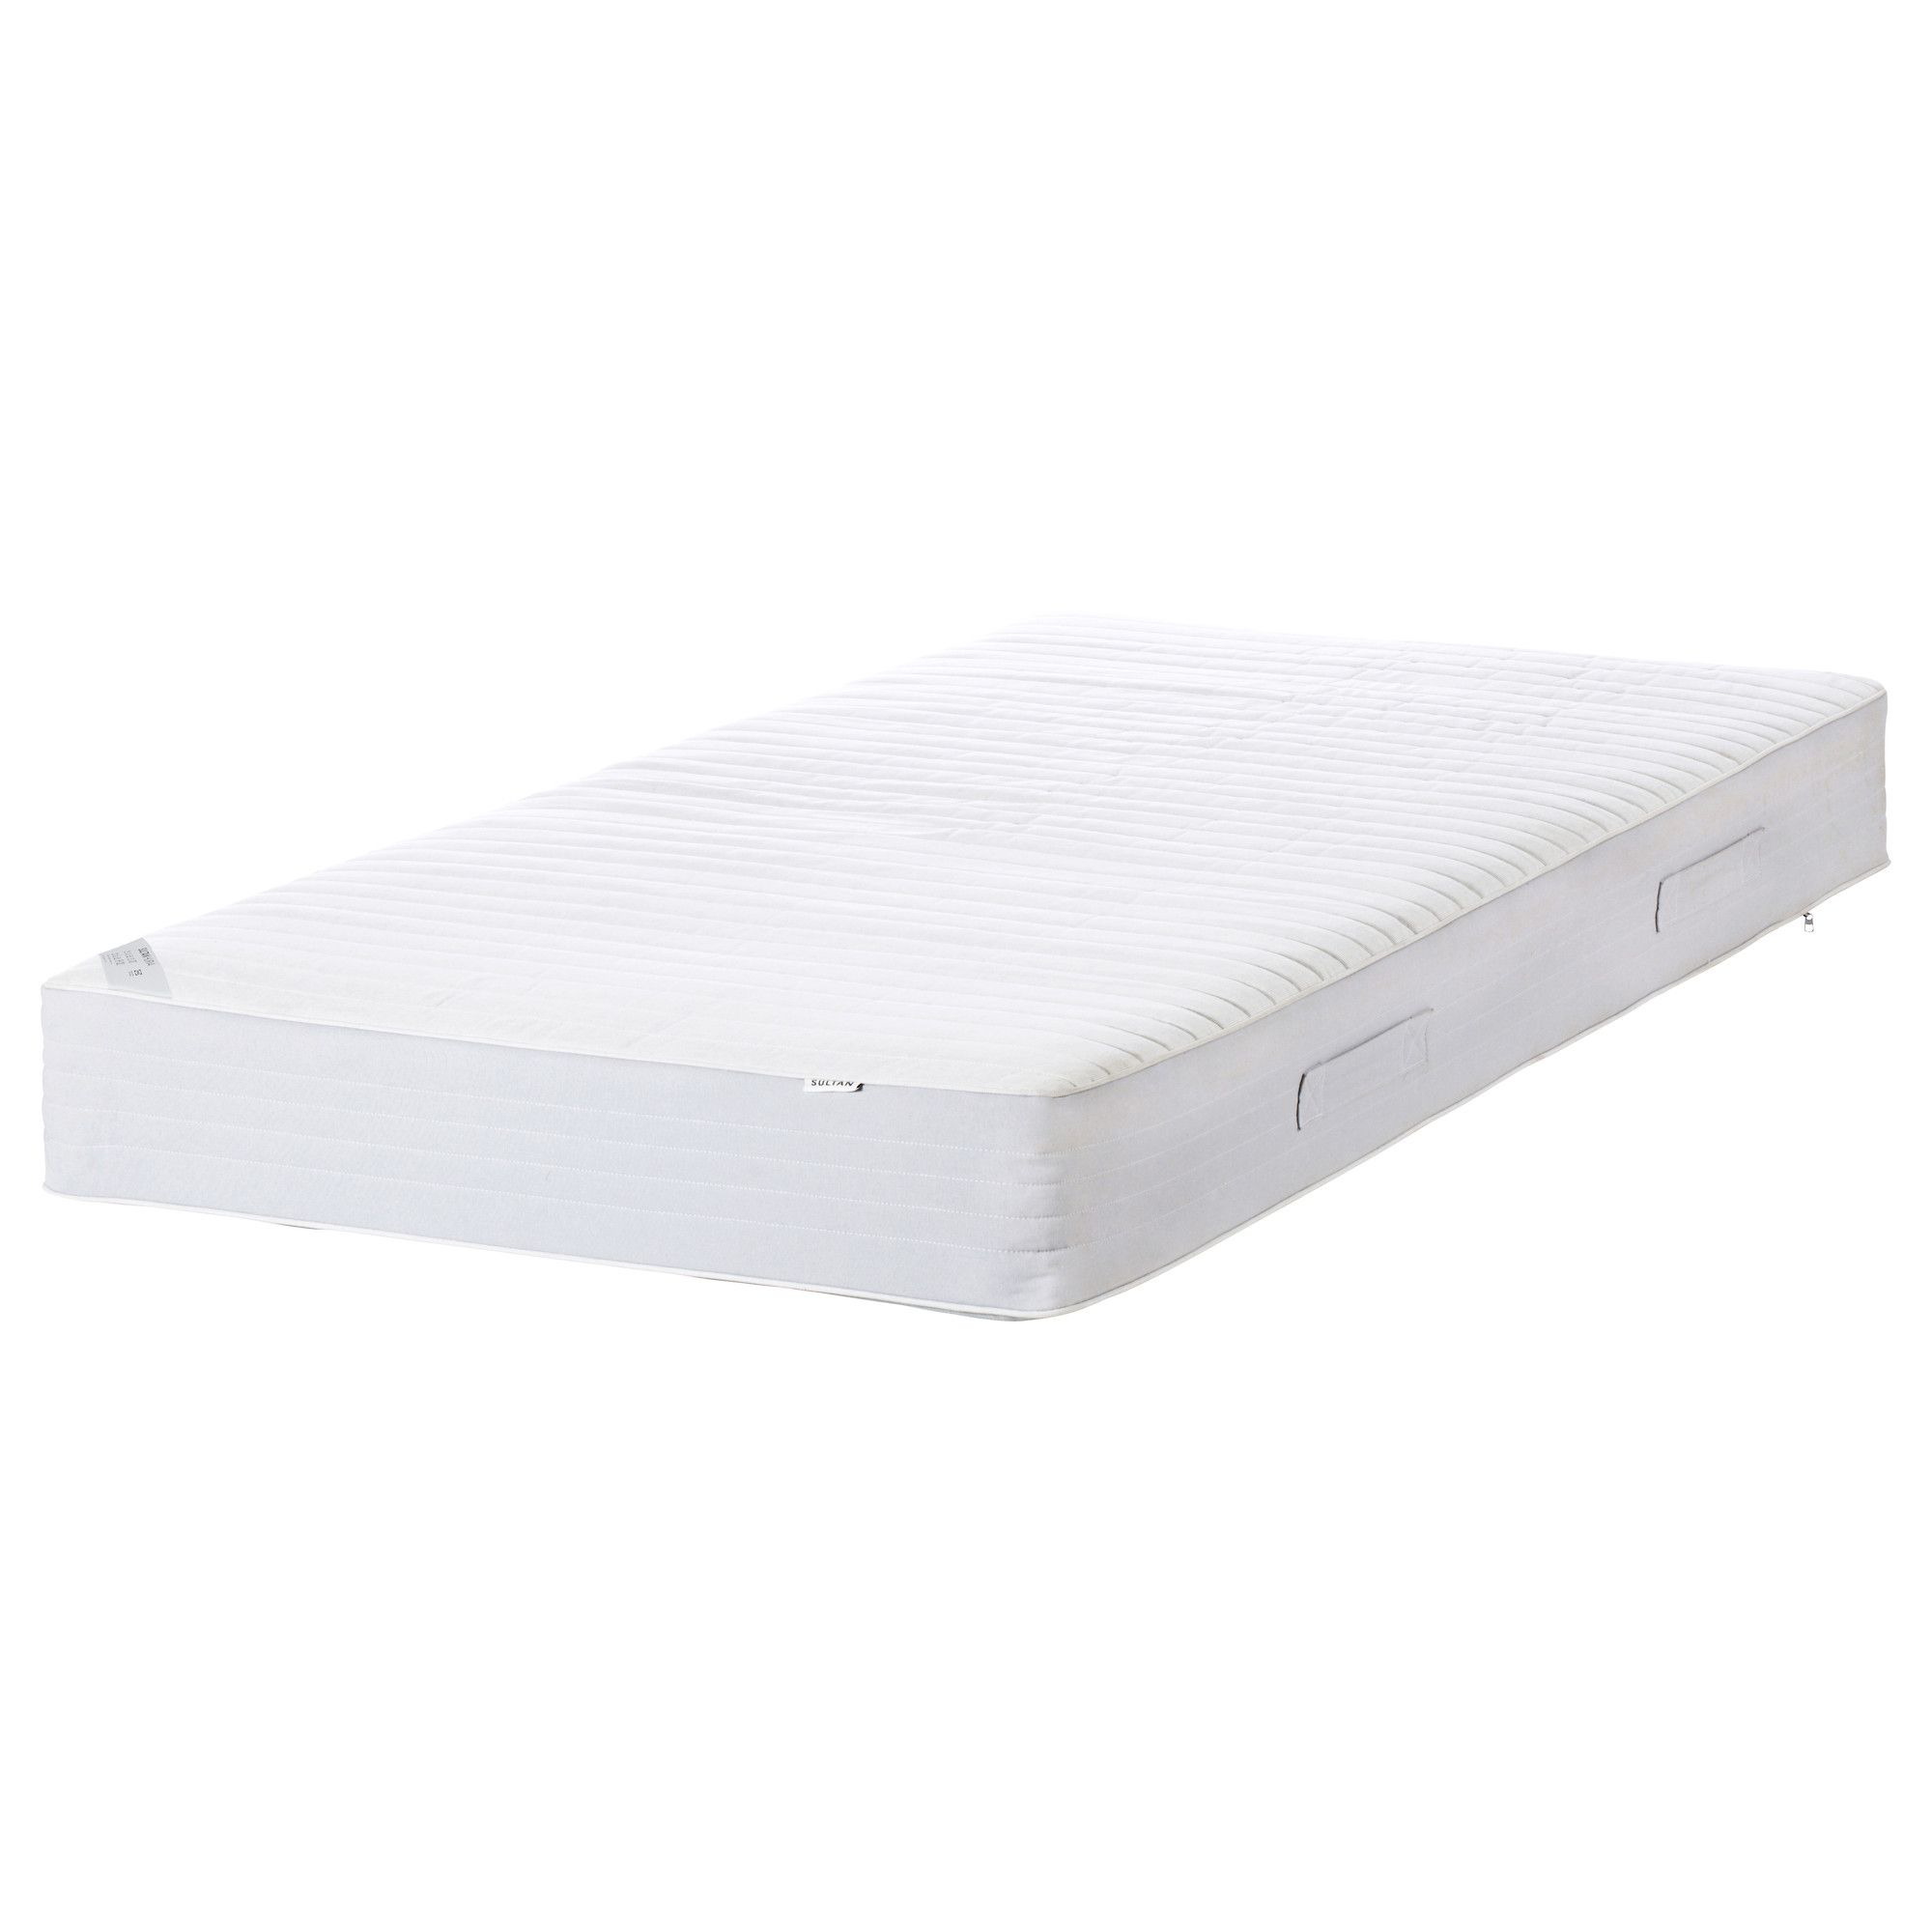 SULTAN HURVA Spring mattress - Full - IKEA $179.00 | Ikea is Life in on